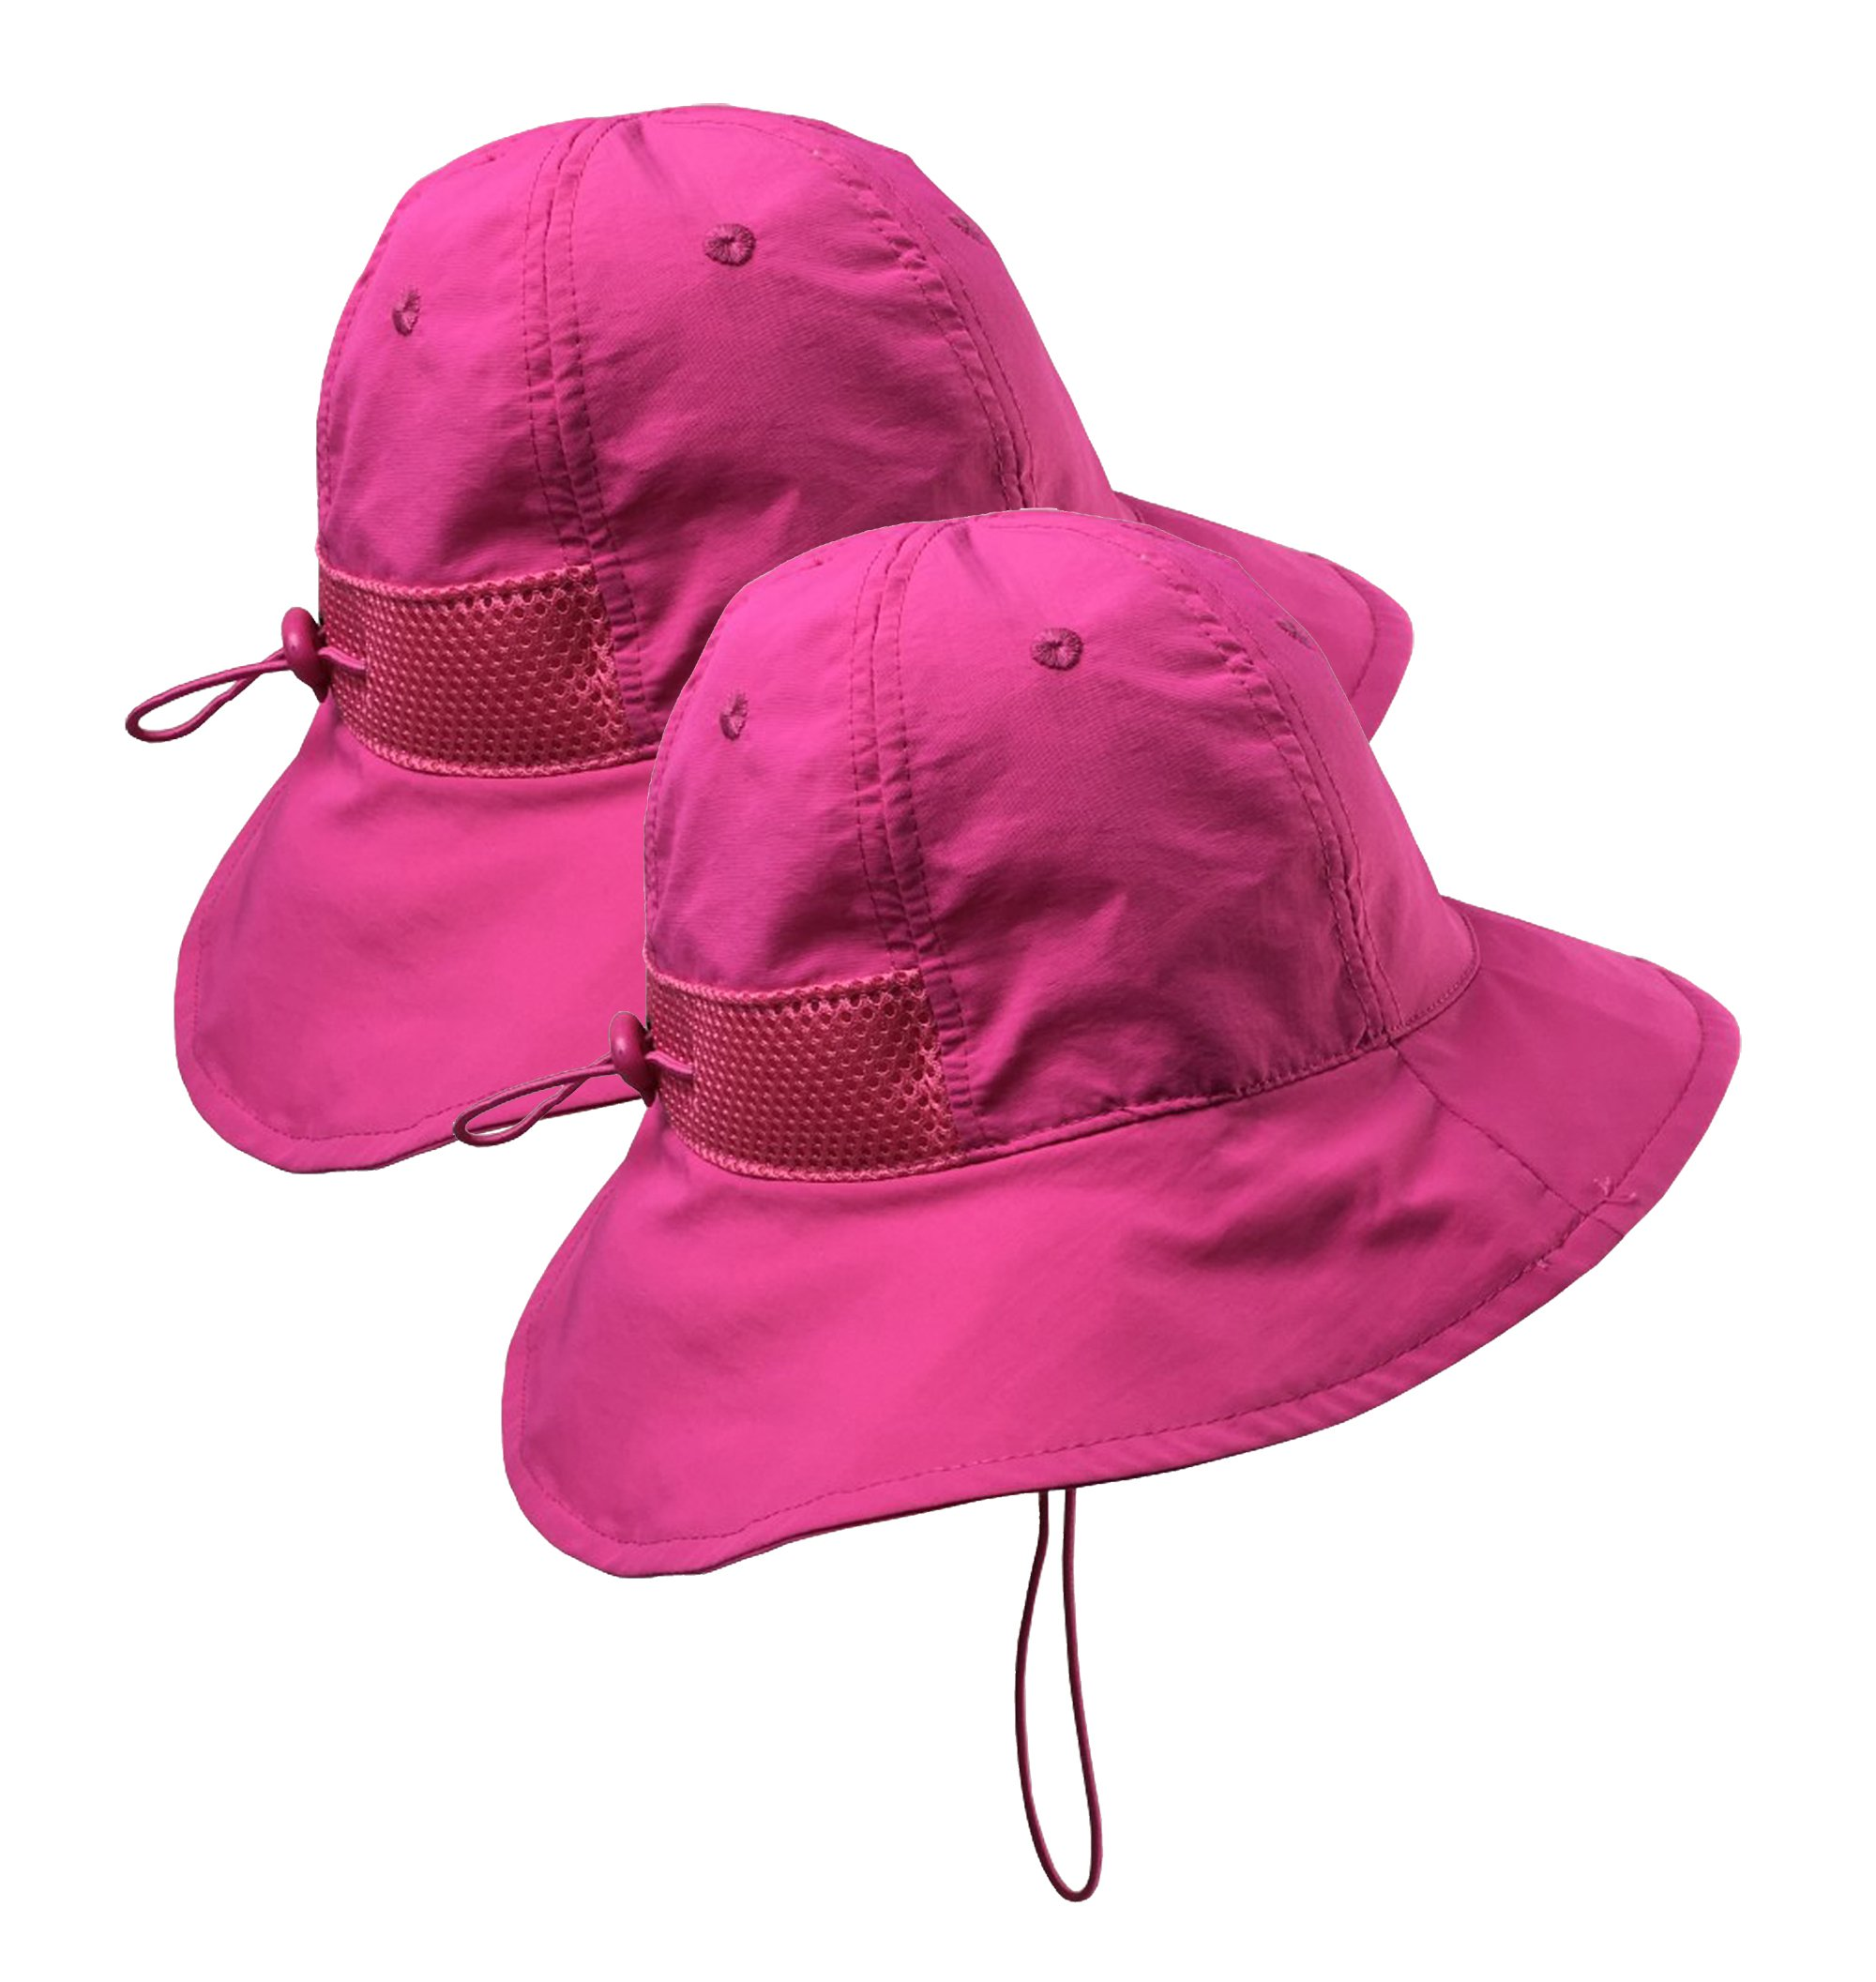 56abd4db Get Quotations · N'Ice Caps Kids and Baby SPF 50+ UV Protection Breathable Sun  Hat -